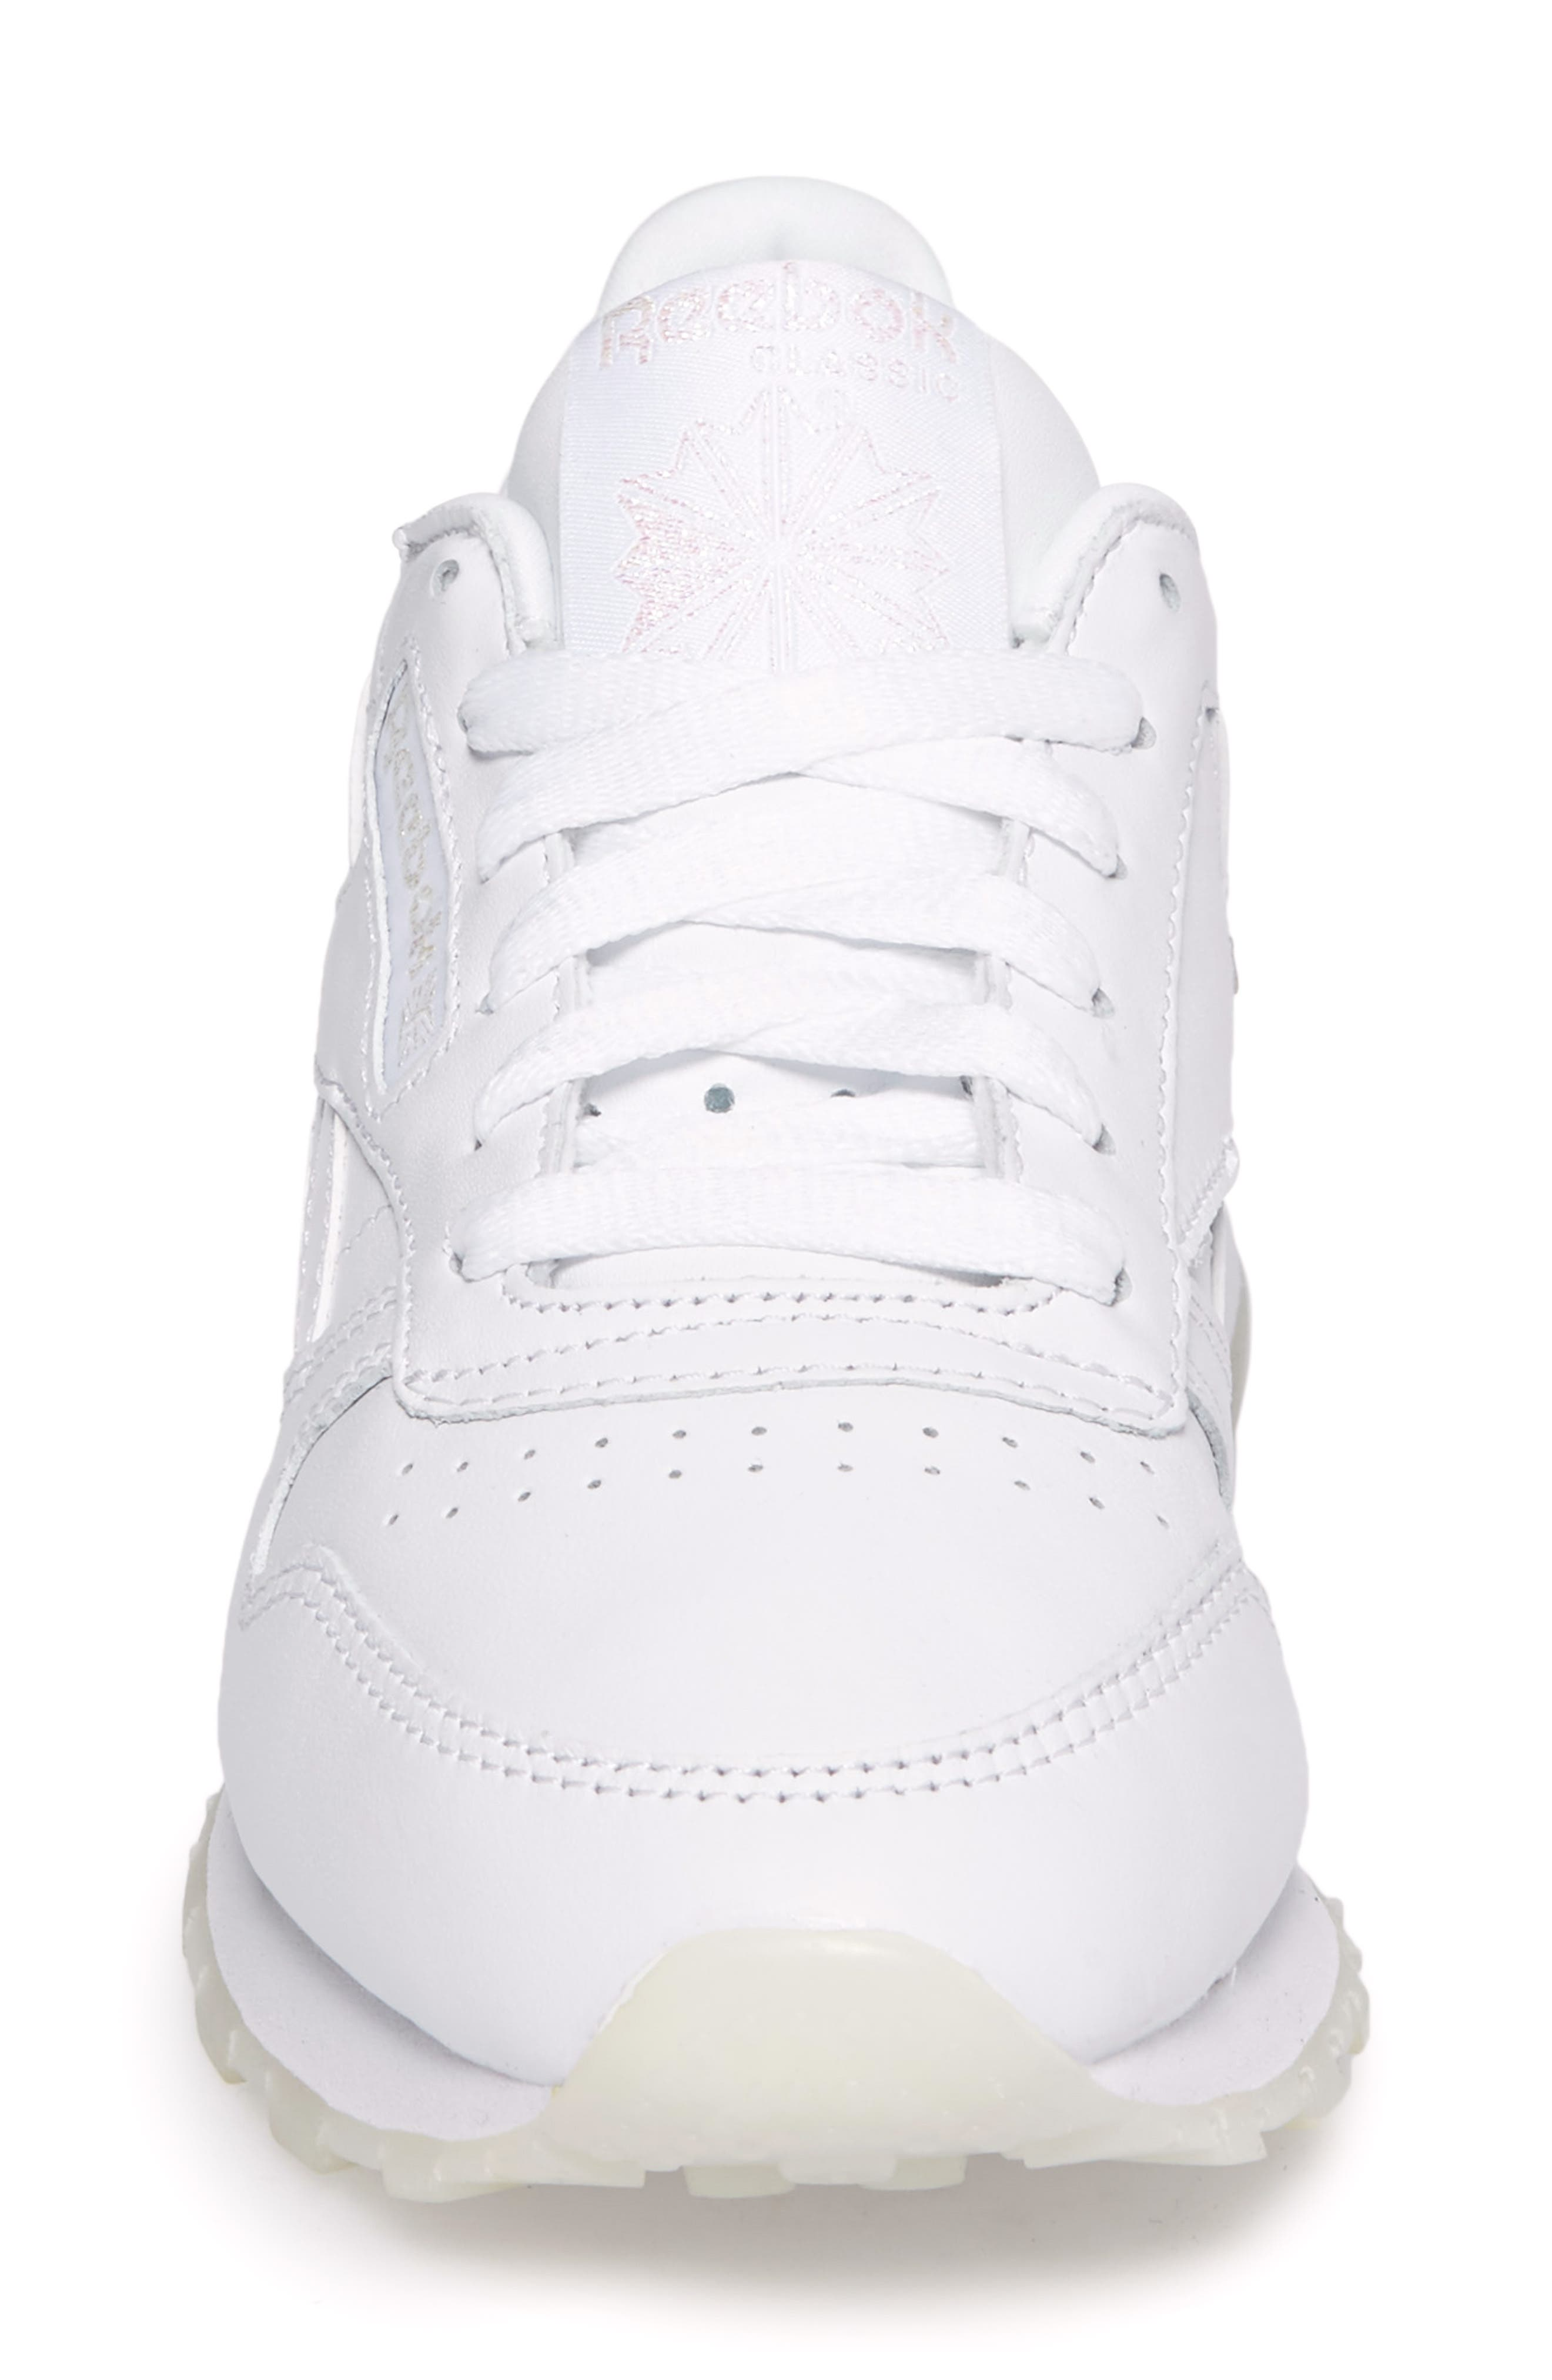 Classic Leather Sneaker,                             Alternate thumbnail 5, color,                             White/ White/ Ice Pearl